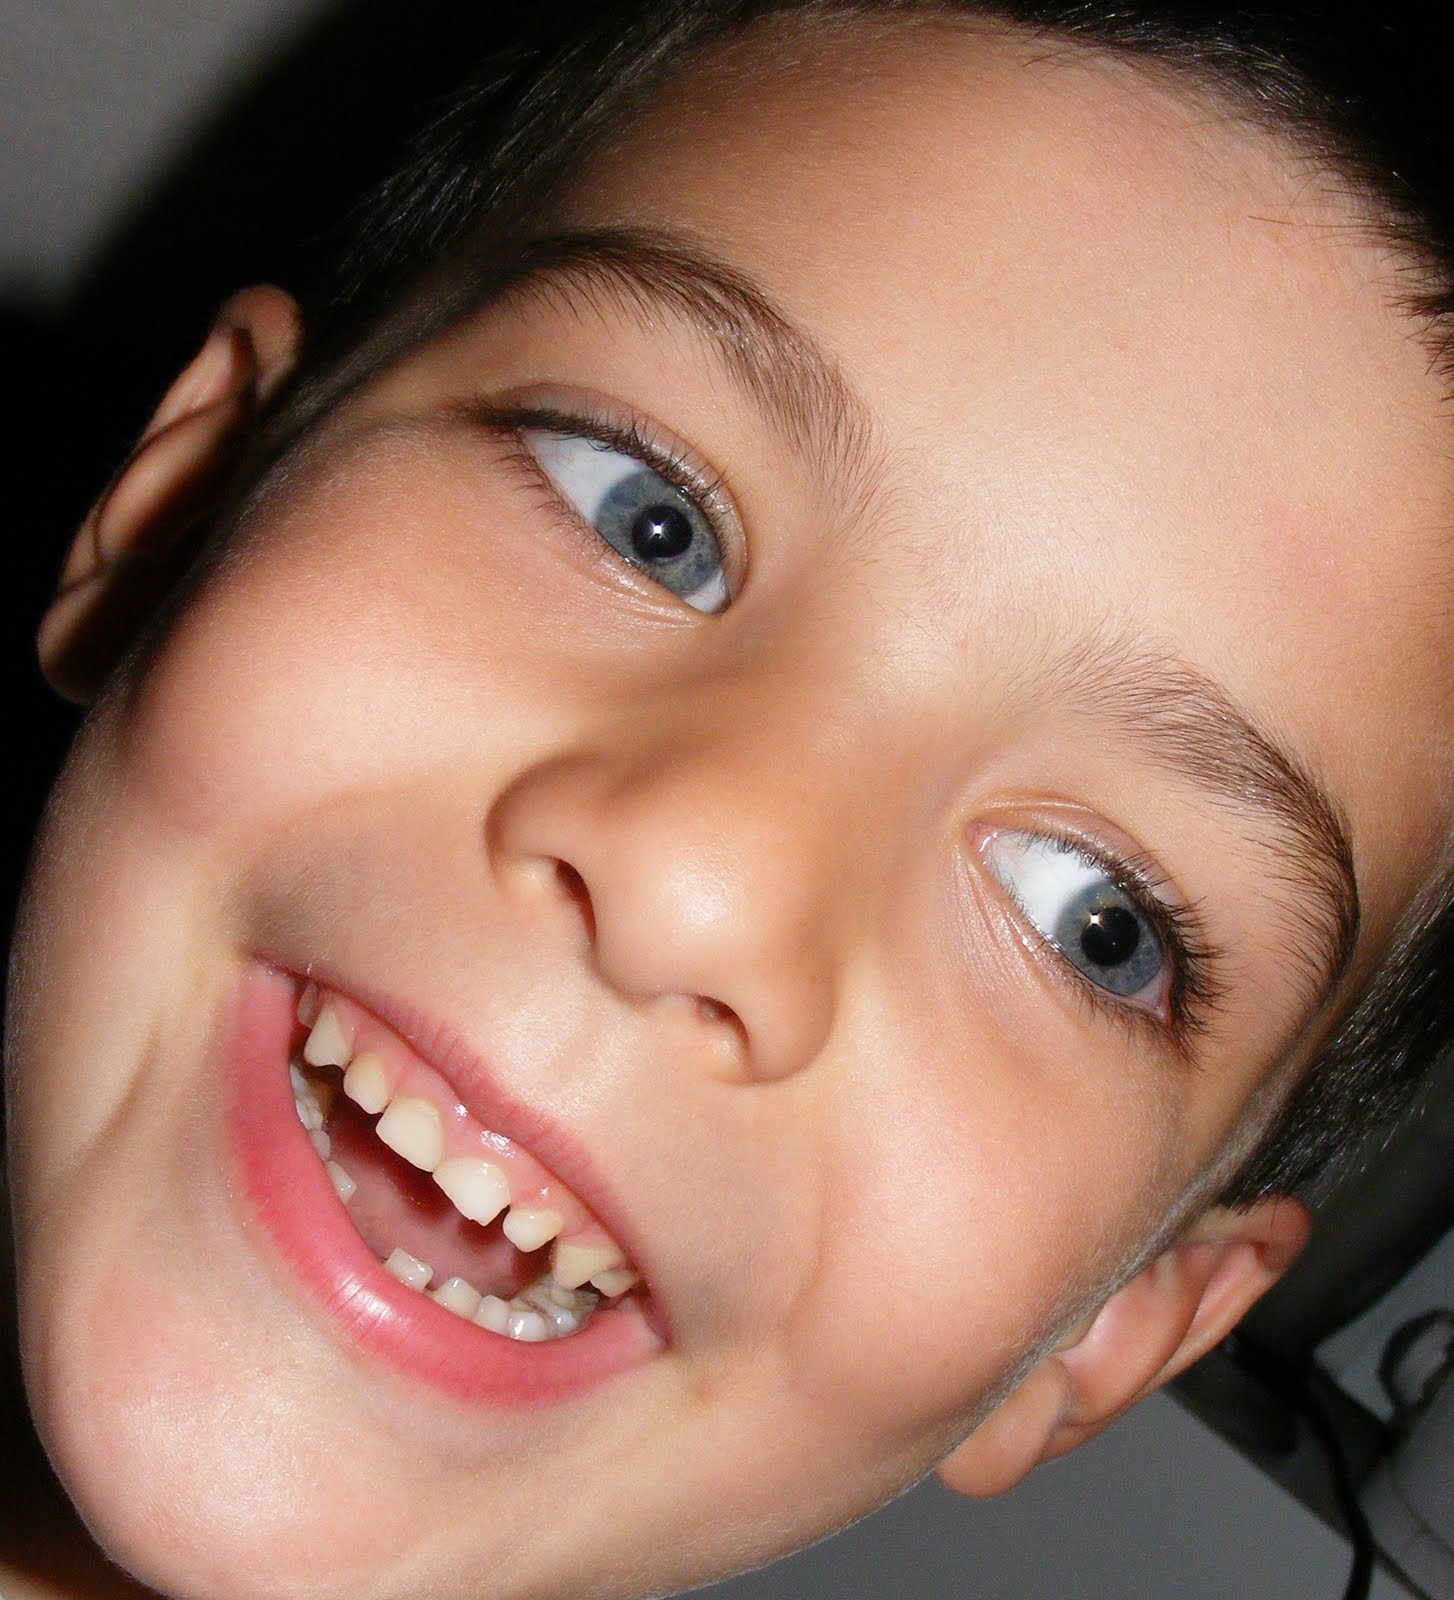 Ten Kids And A Dog: A First Lost Tooth---Makes My Monday